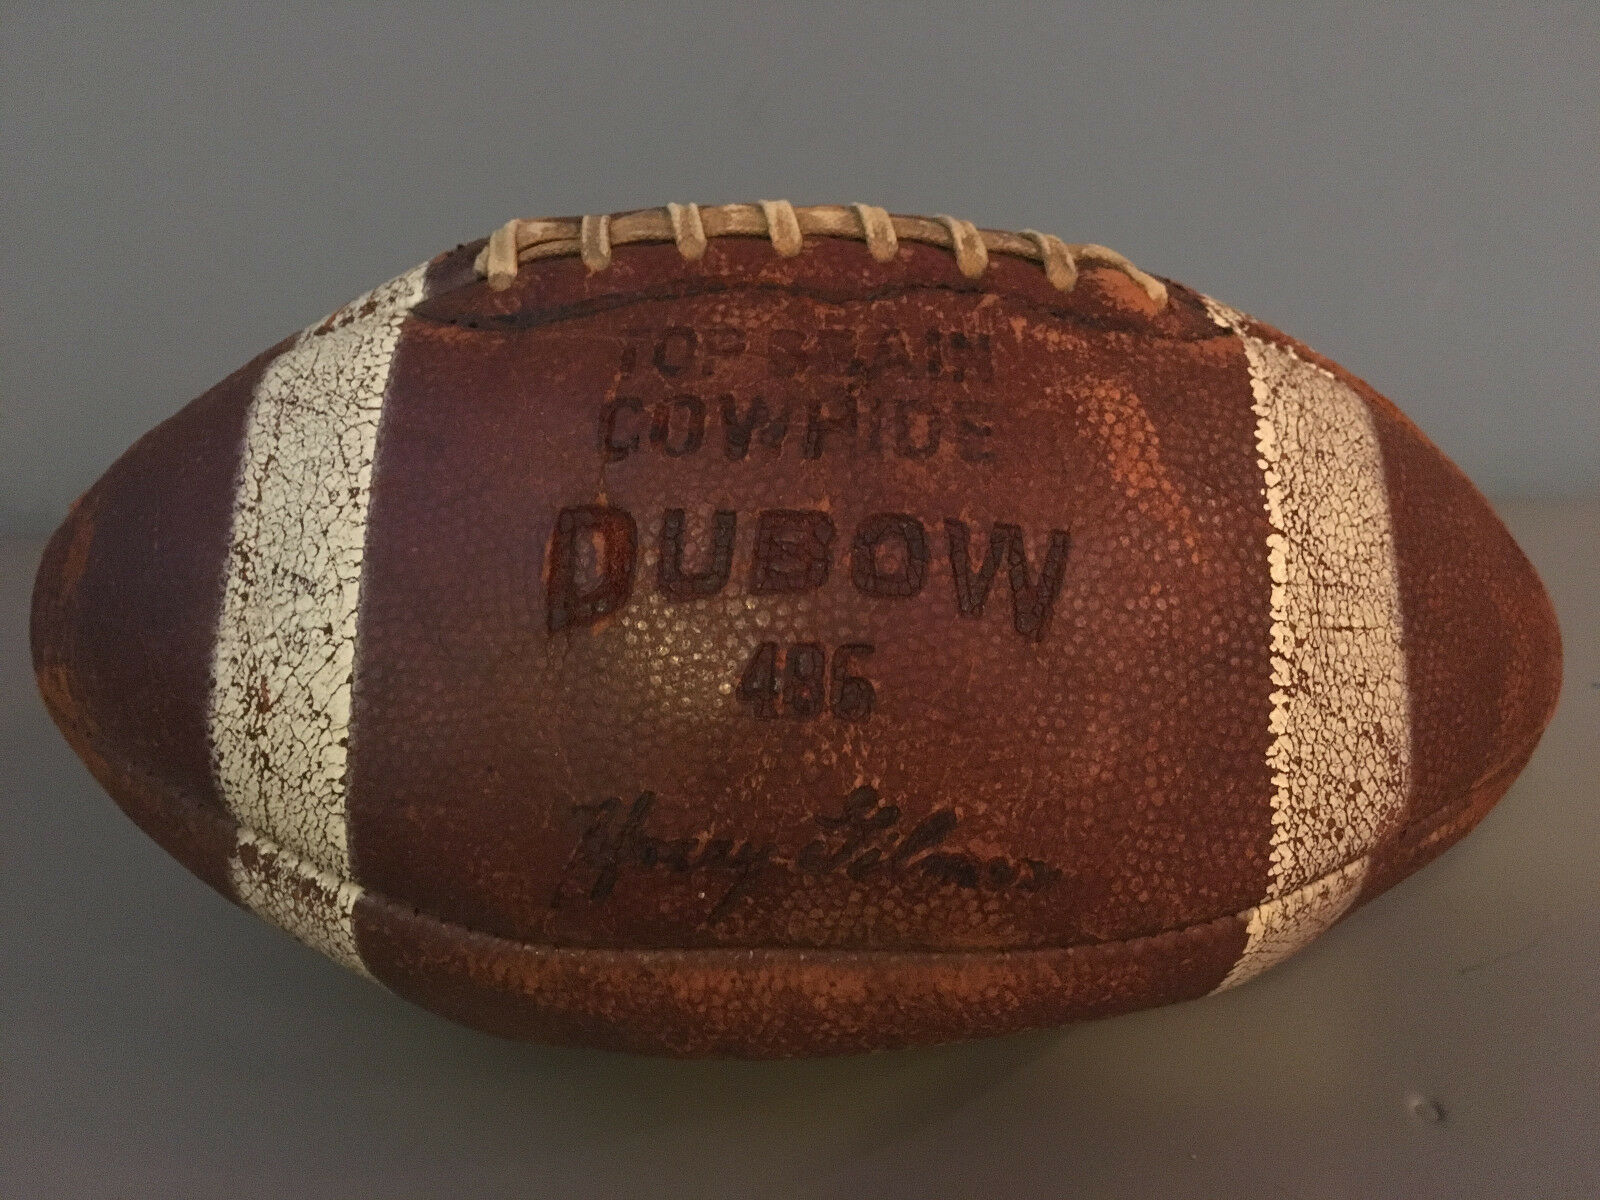 VINTAGE Harry Gimer DUBOW Top Grain Cowhide Football with Laces Made USA